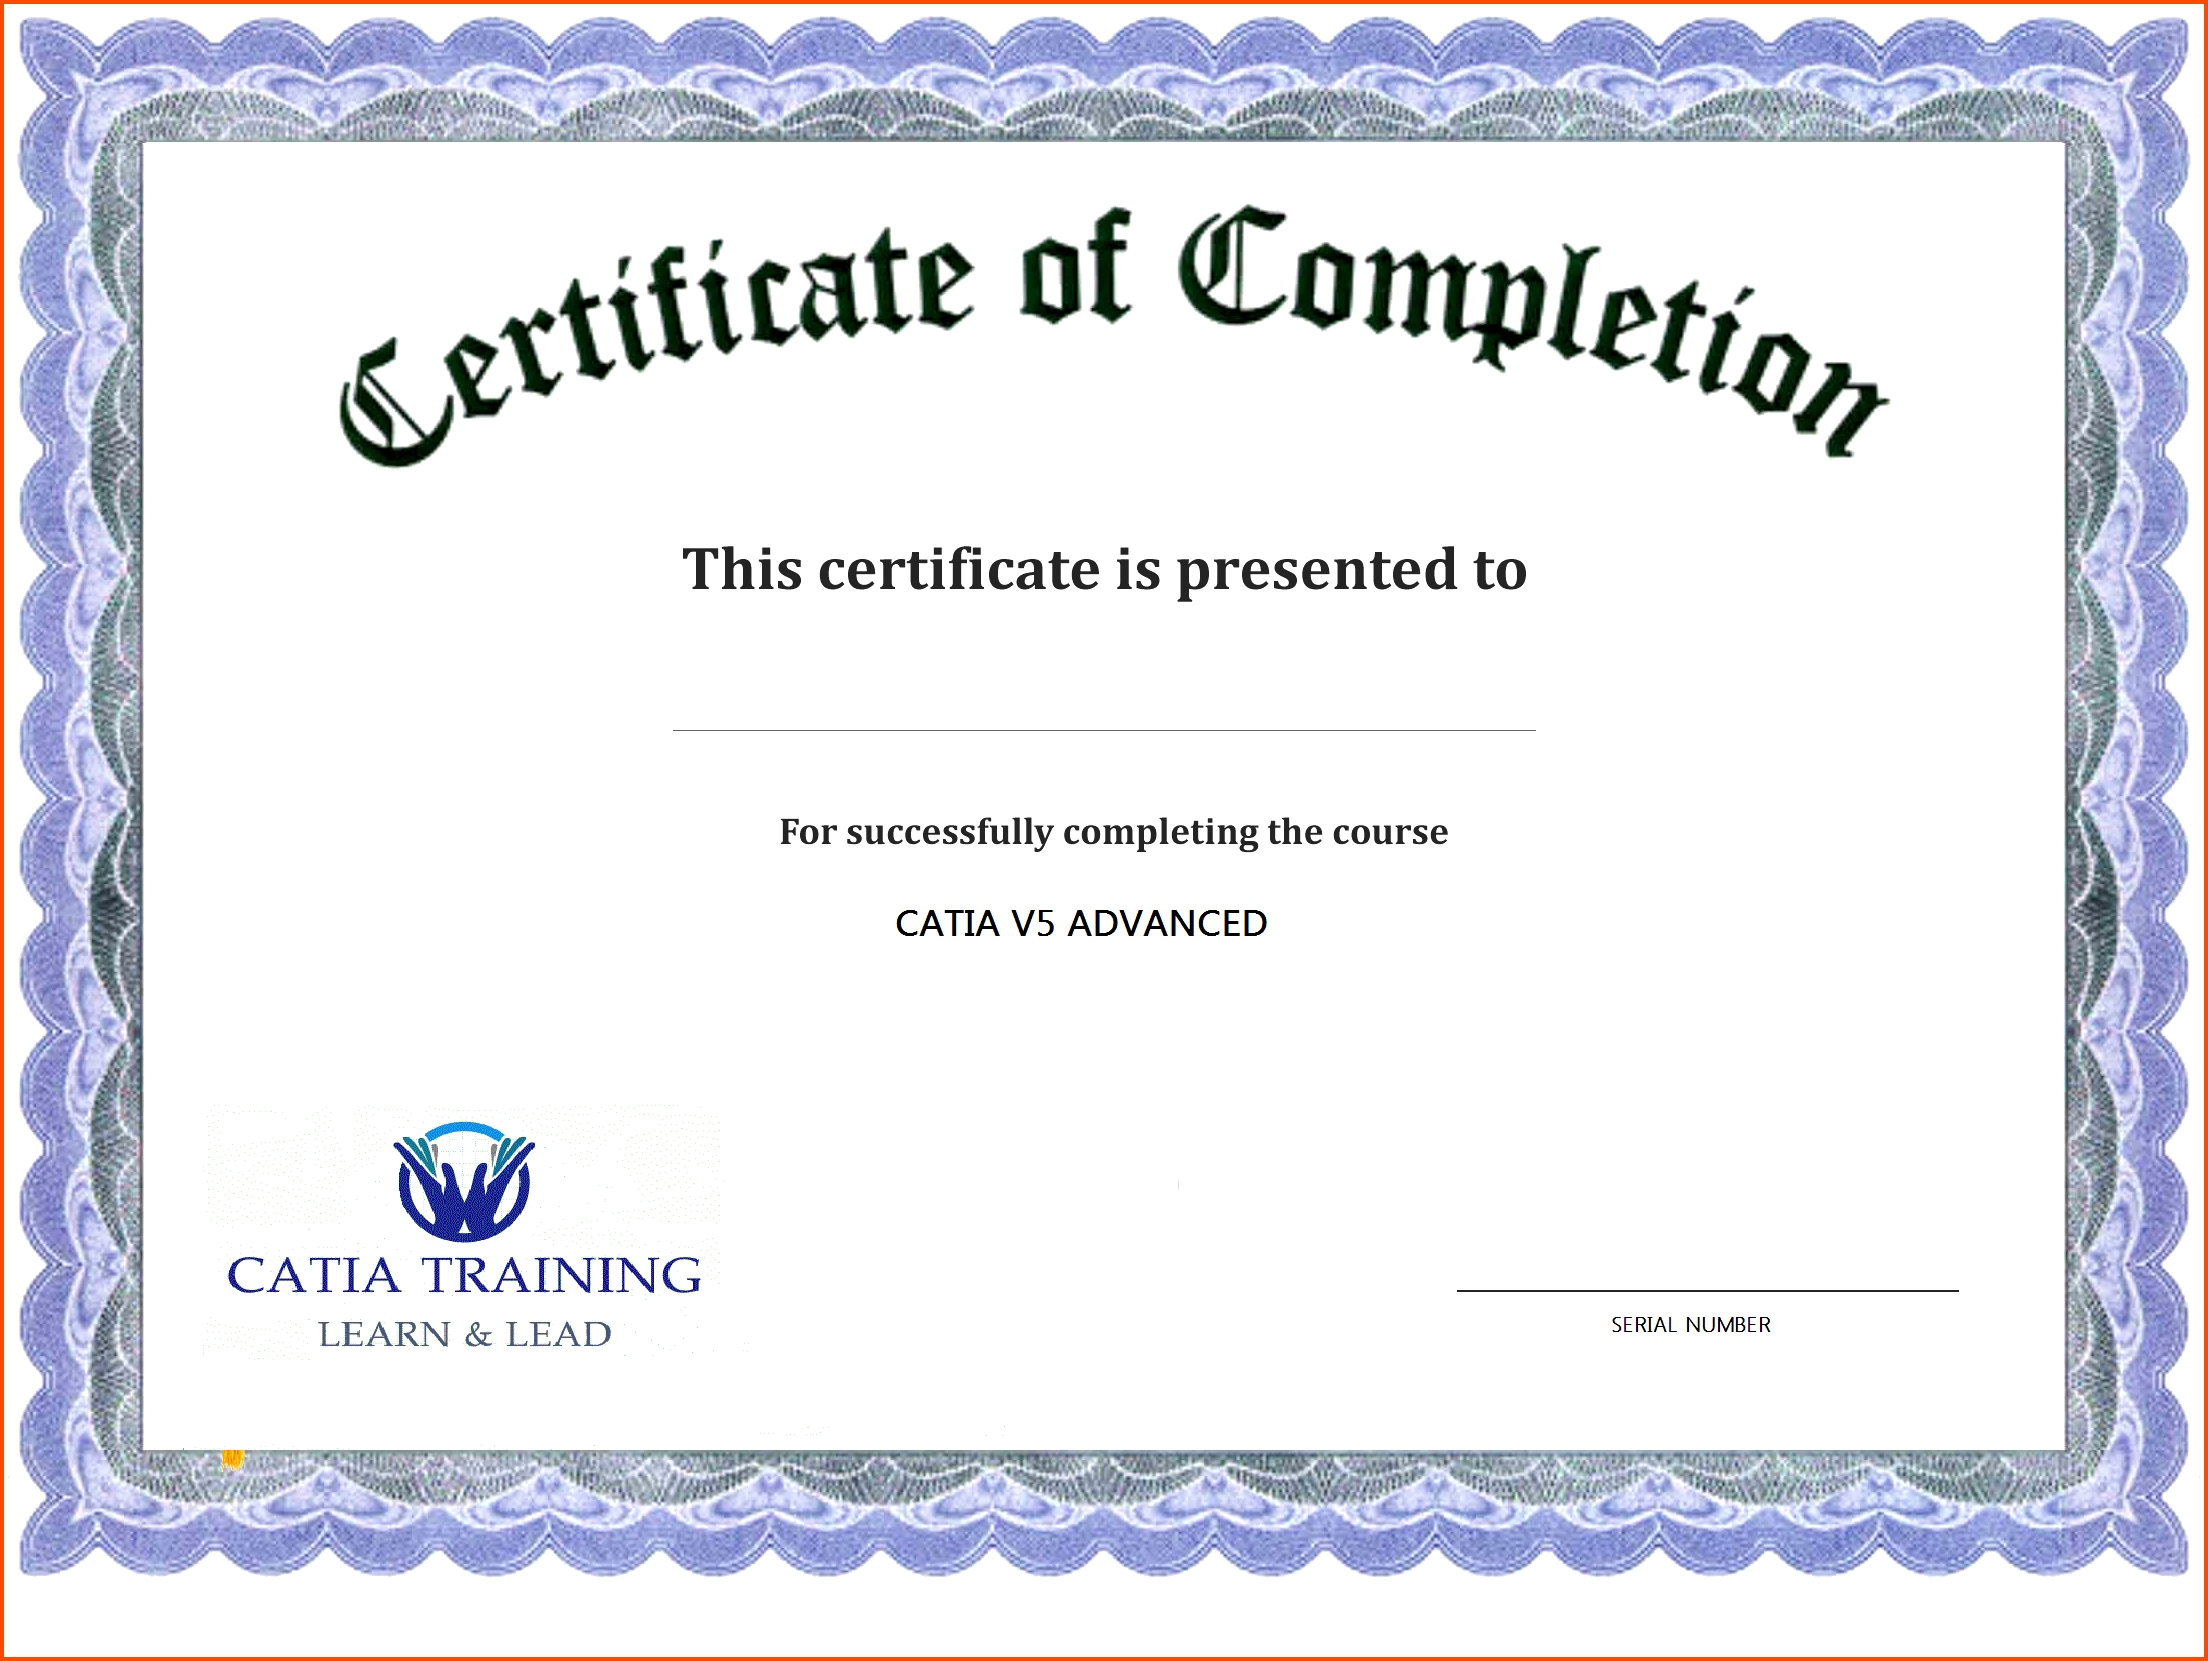 Certificate Template In Word | Safebest.xyz Throughout Free Certificate Templates For Word 2007